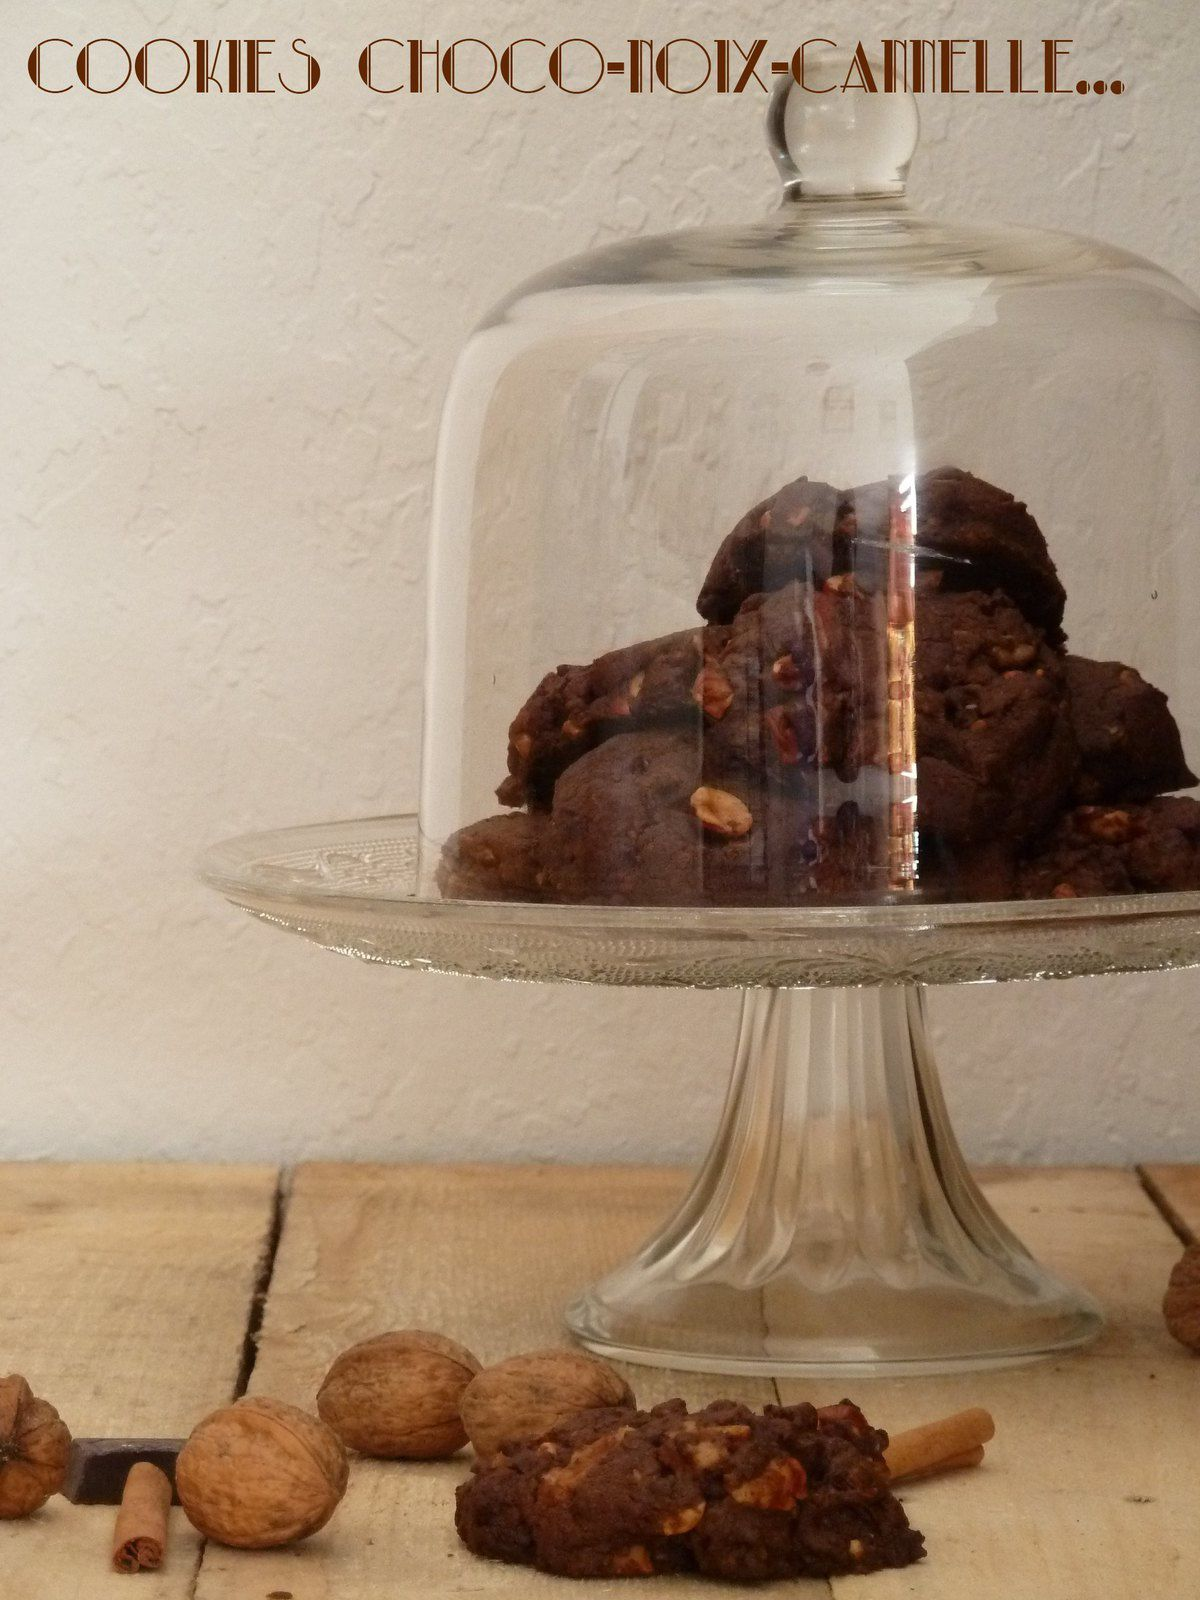 Cookies choco-noix-cannelle